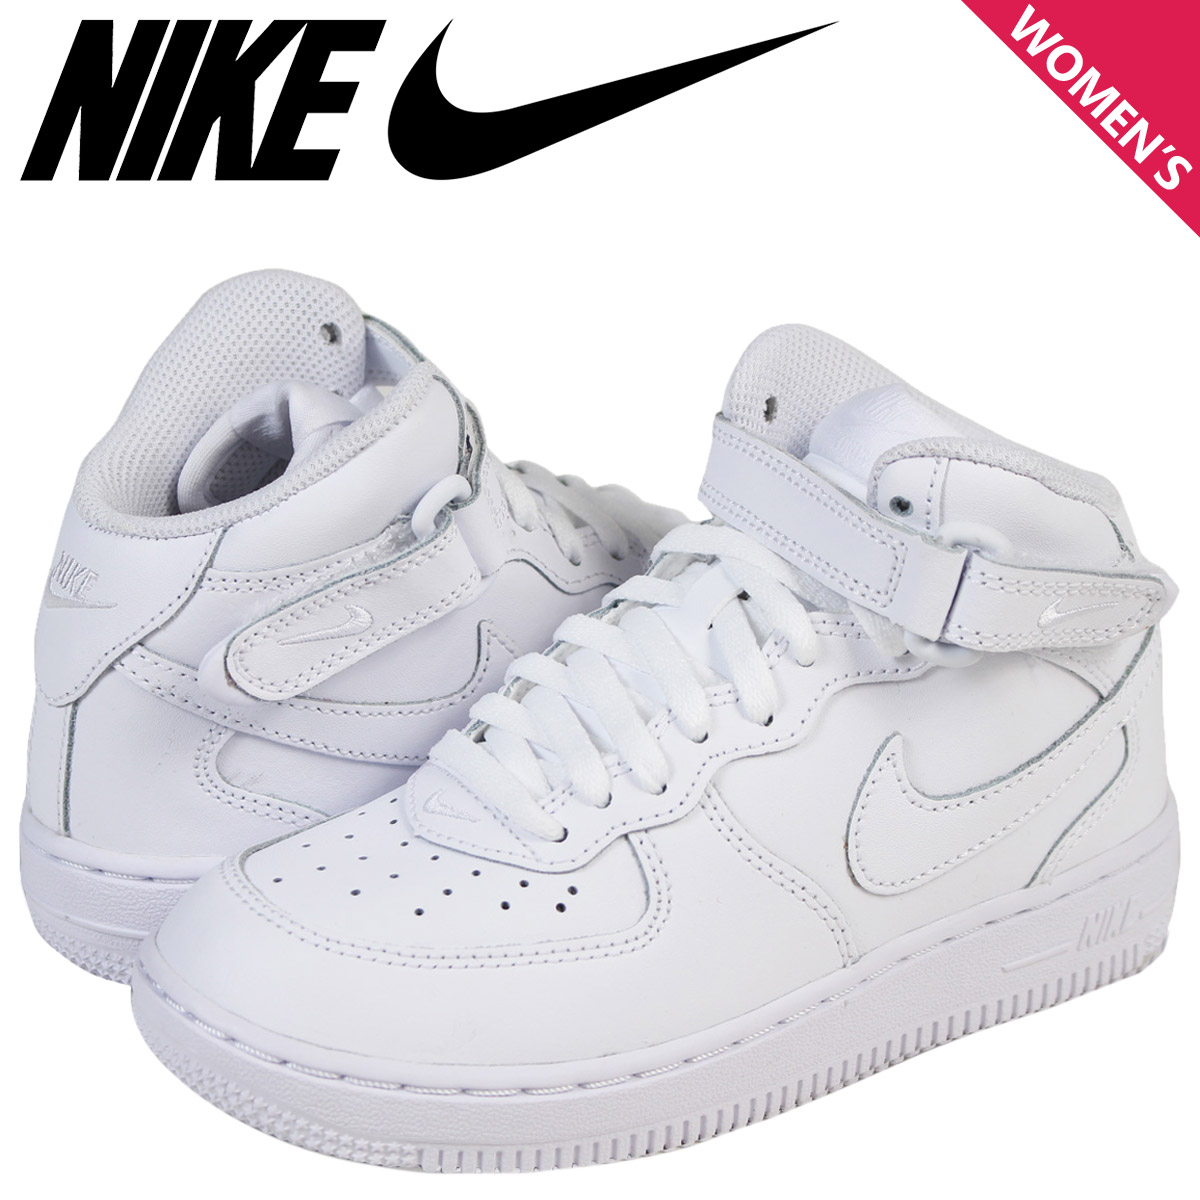 0b2e0fae 小耐吉NIKE空軍1小孩運動鞋AIR FORCE 1 LOW PS PRESCHOOL 314196-113白